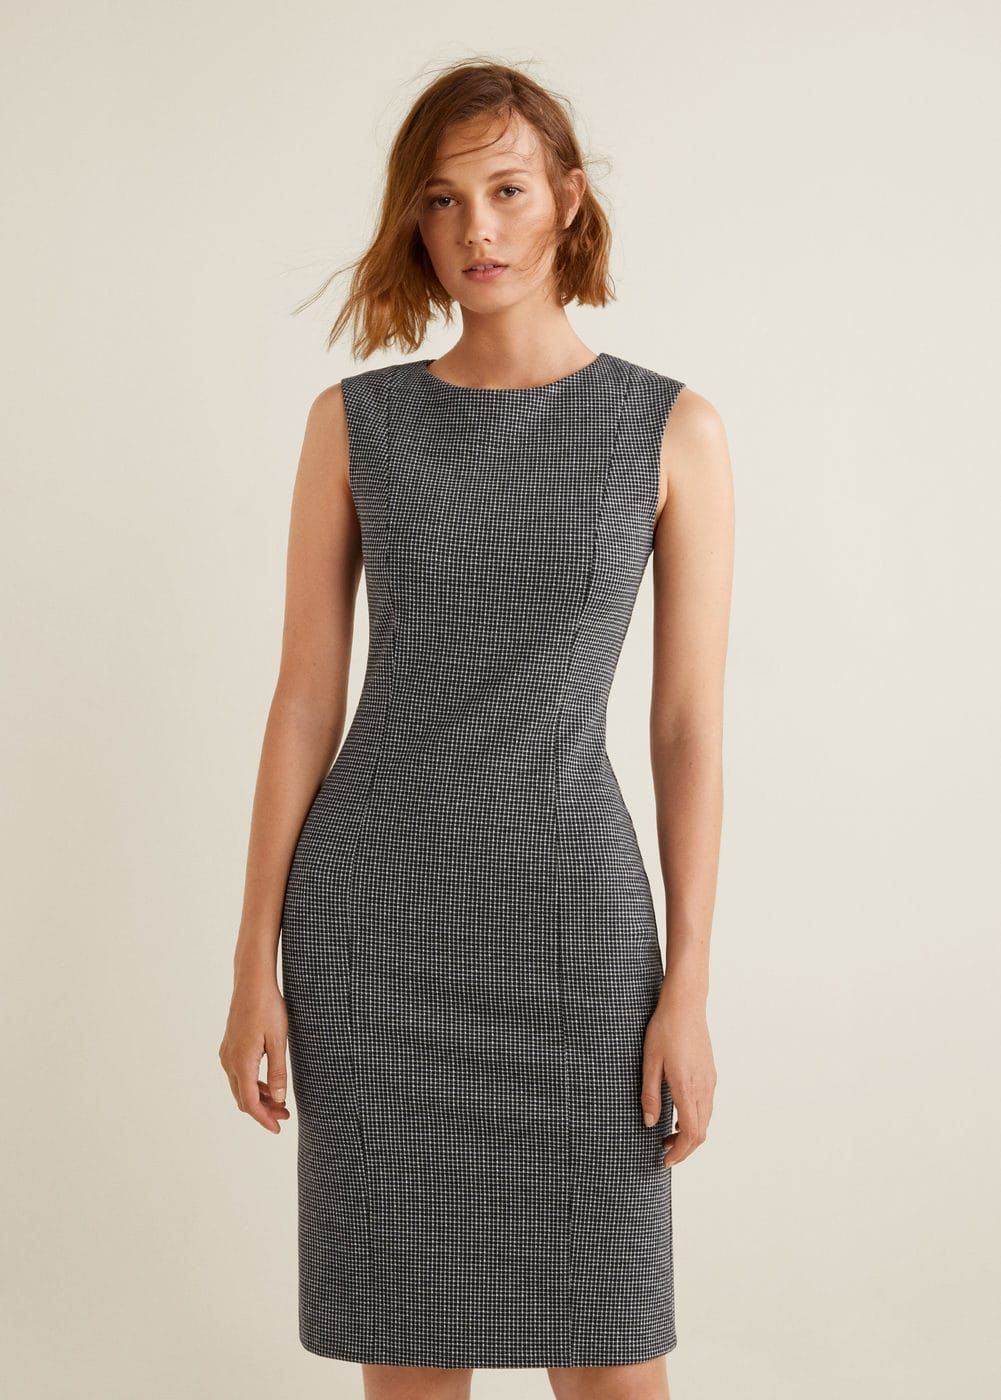 19fa0381f4 Fitted design Check print Sleeveless Round neck Tuck detail Back vent  Concealed back zip closure